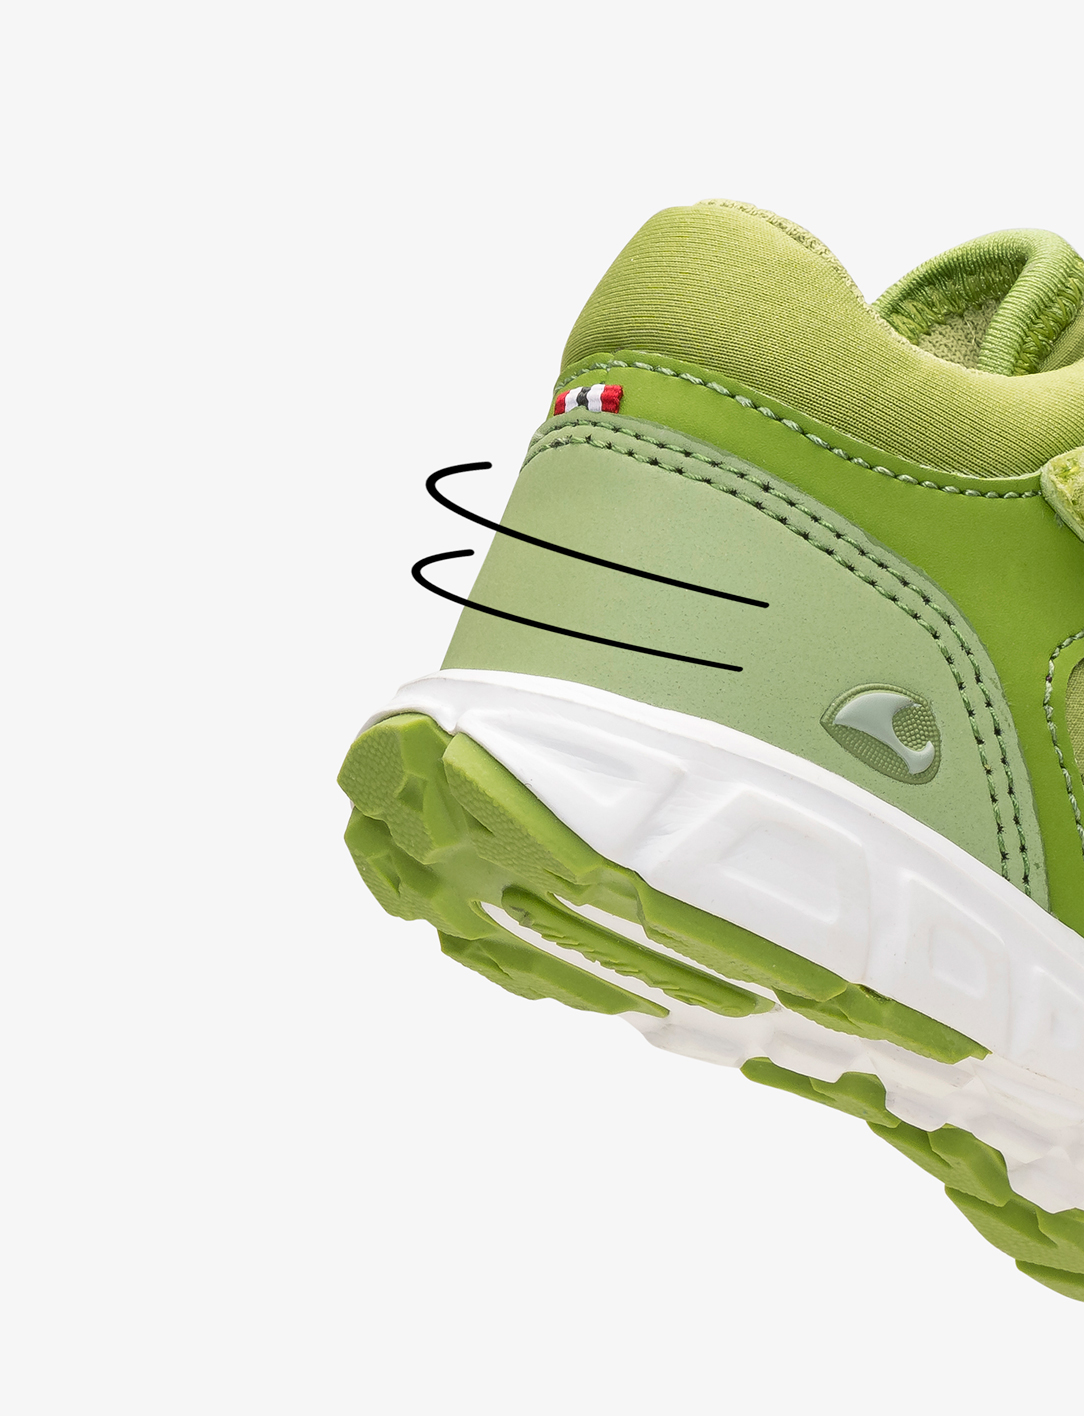 Green kids shoes